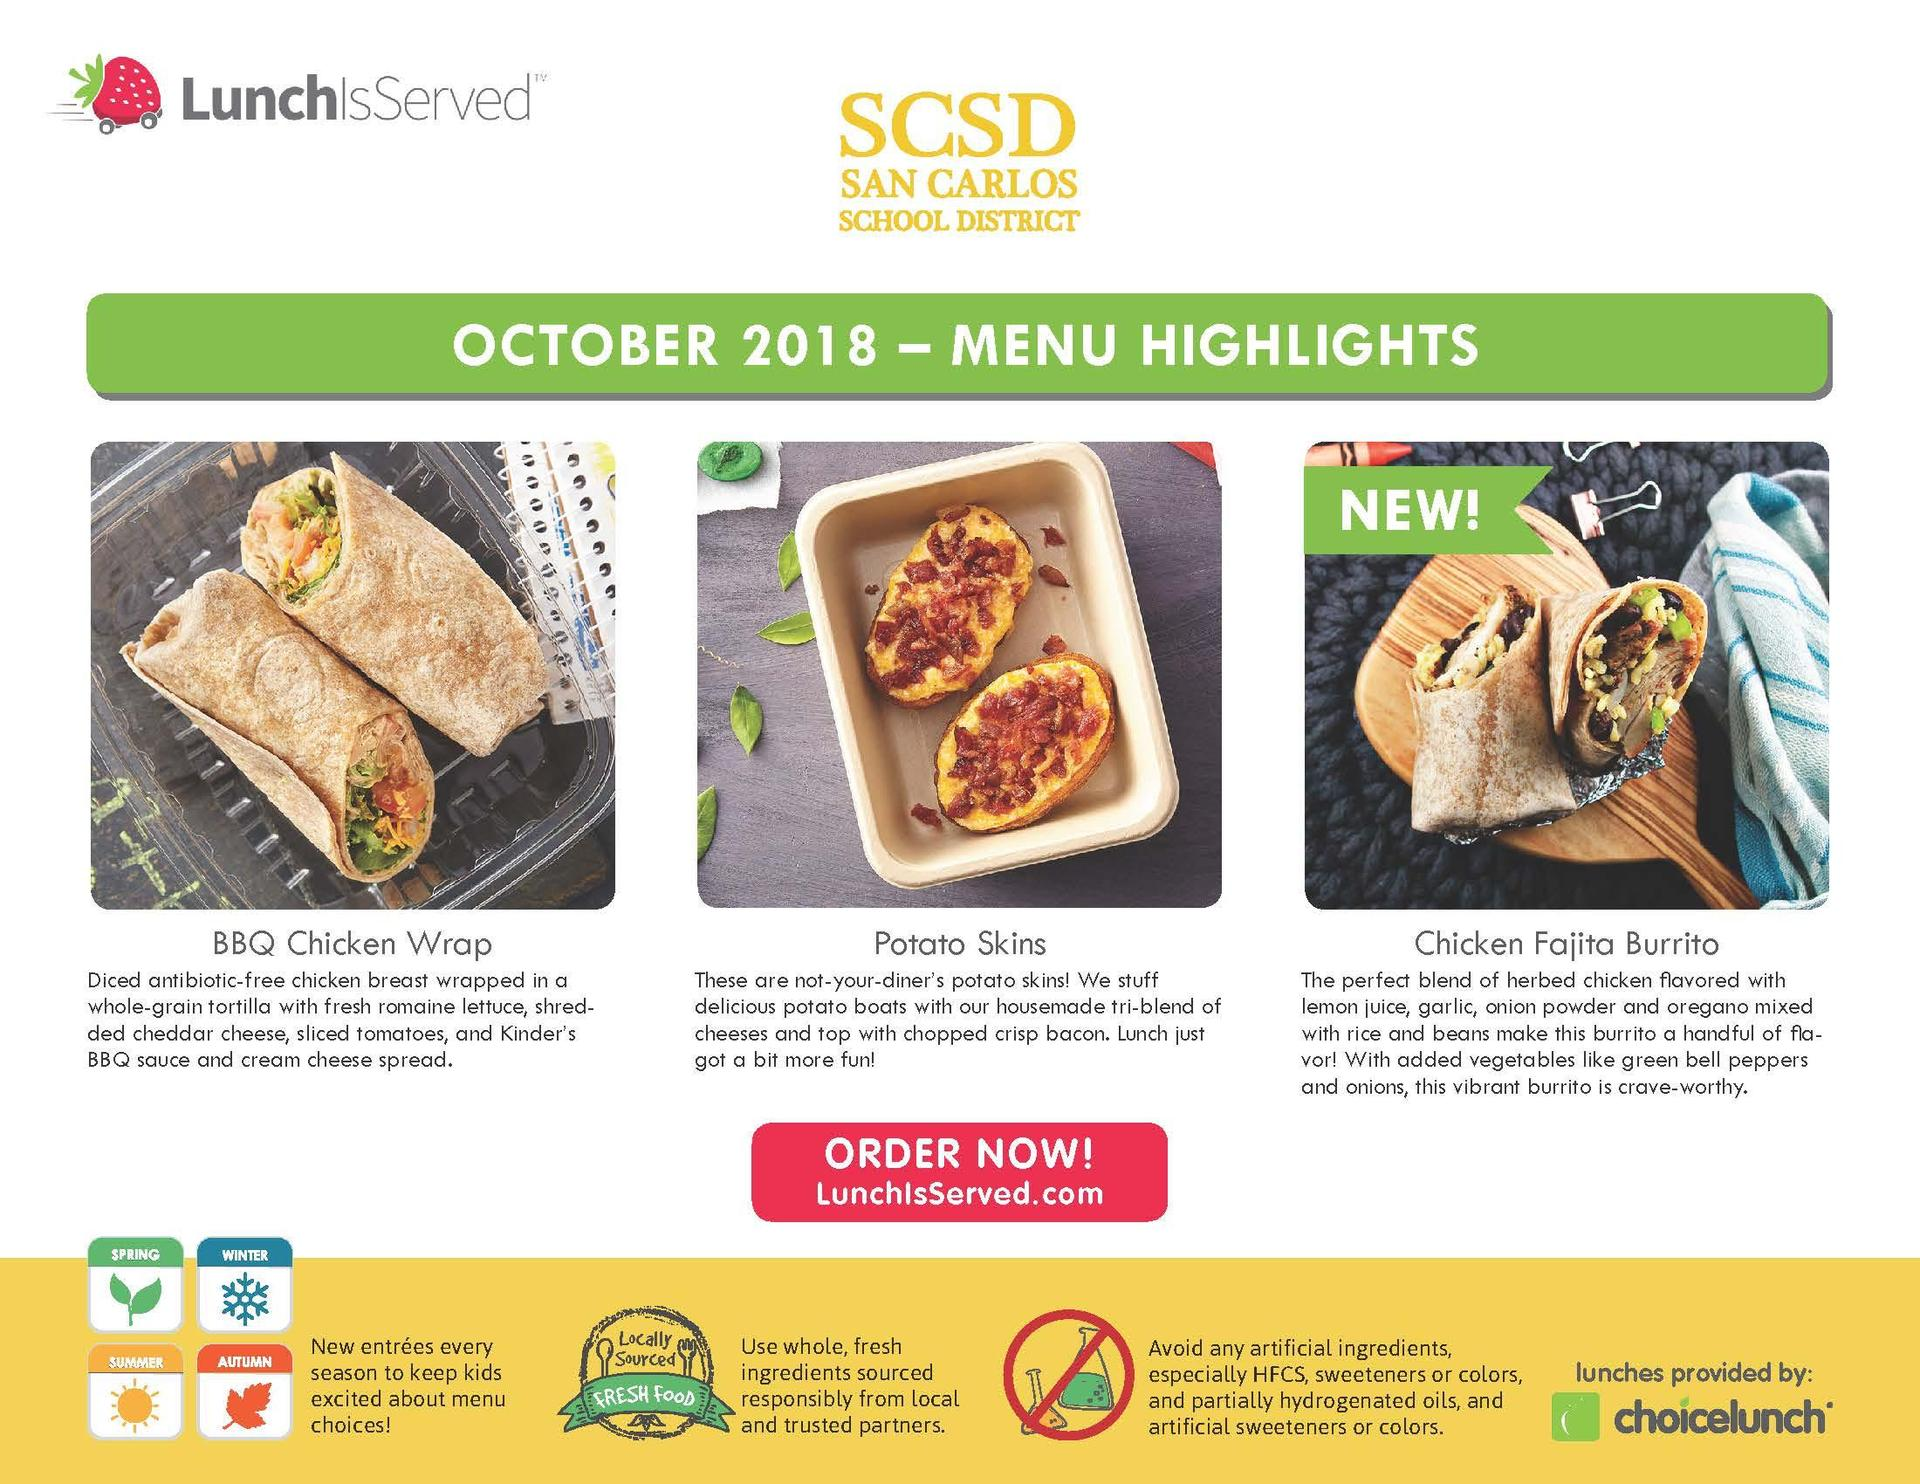 Hot lunch highlights for October